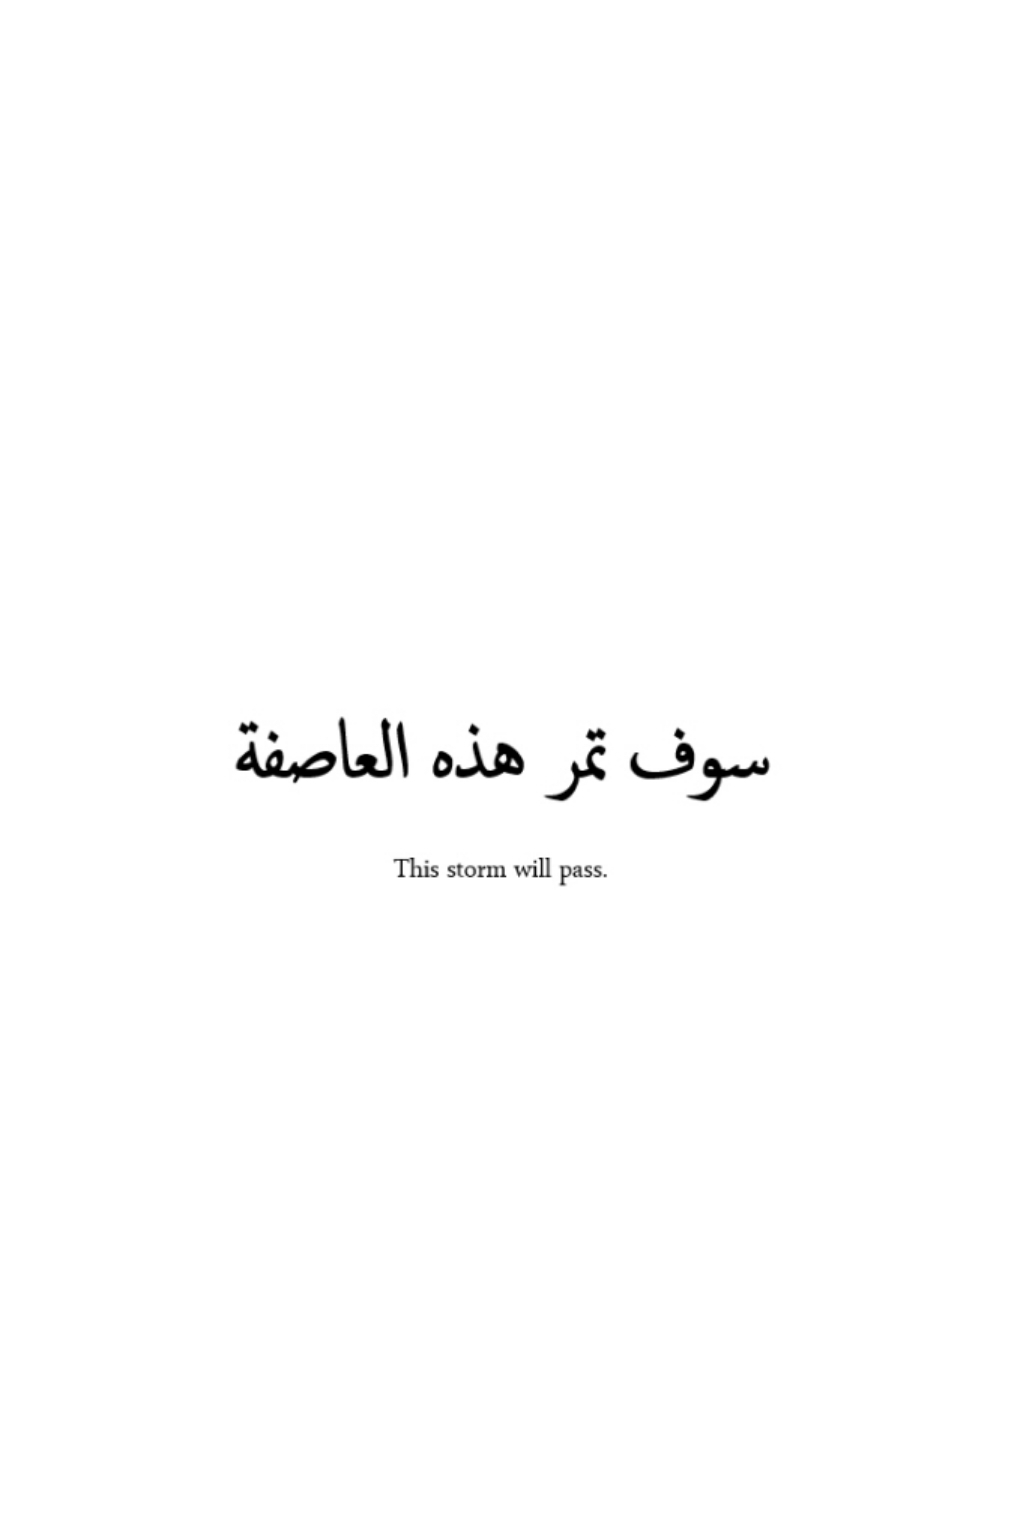 Arabic Quotes About Allah With English Translation